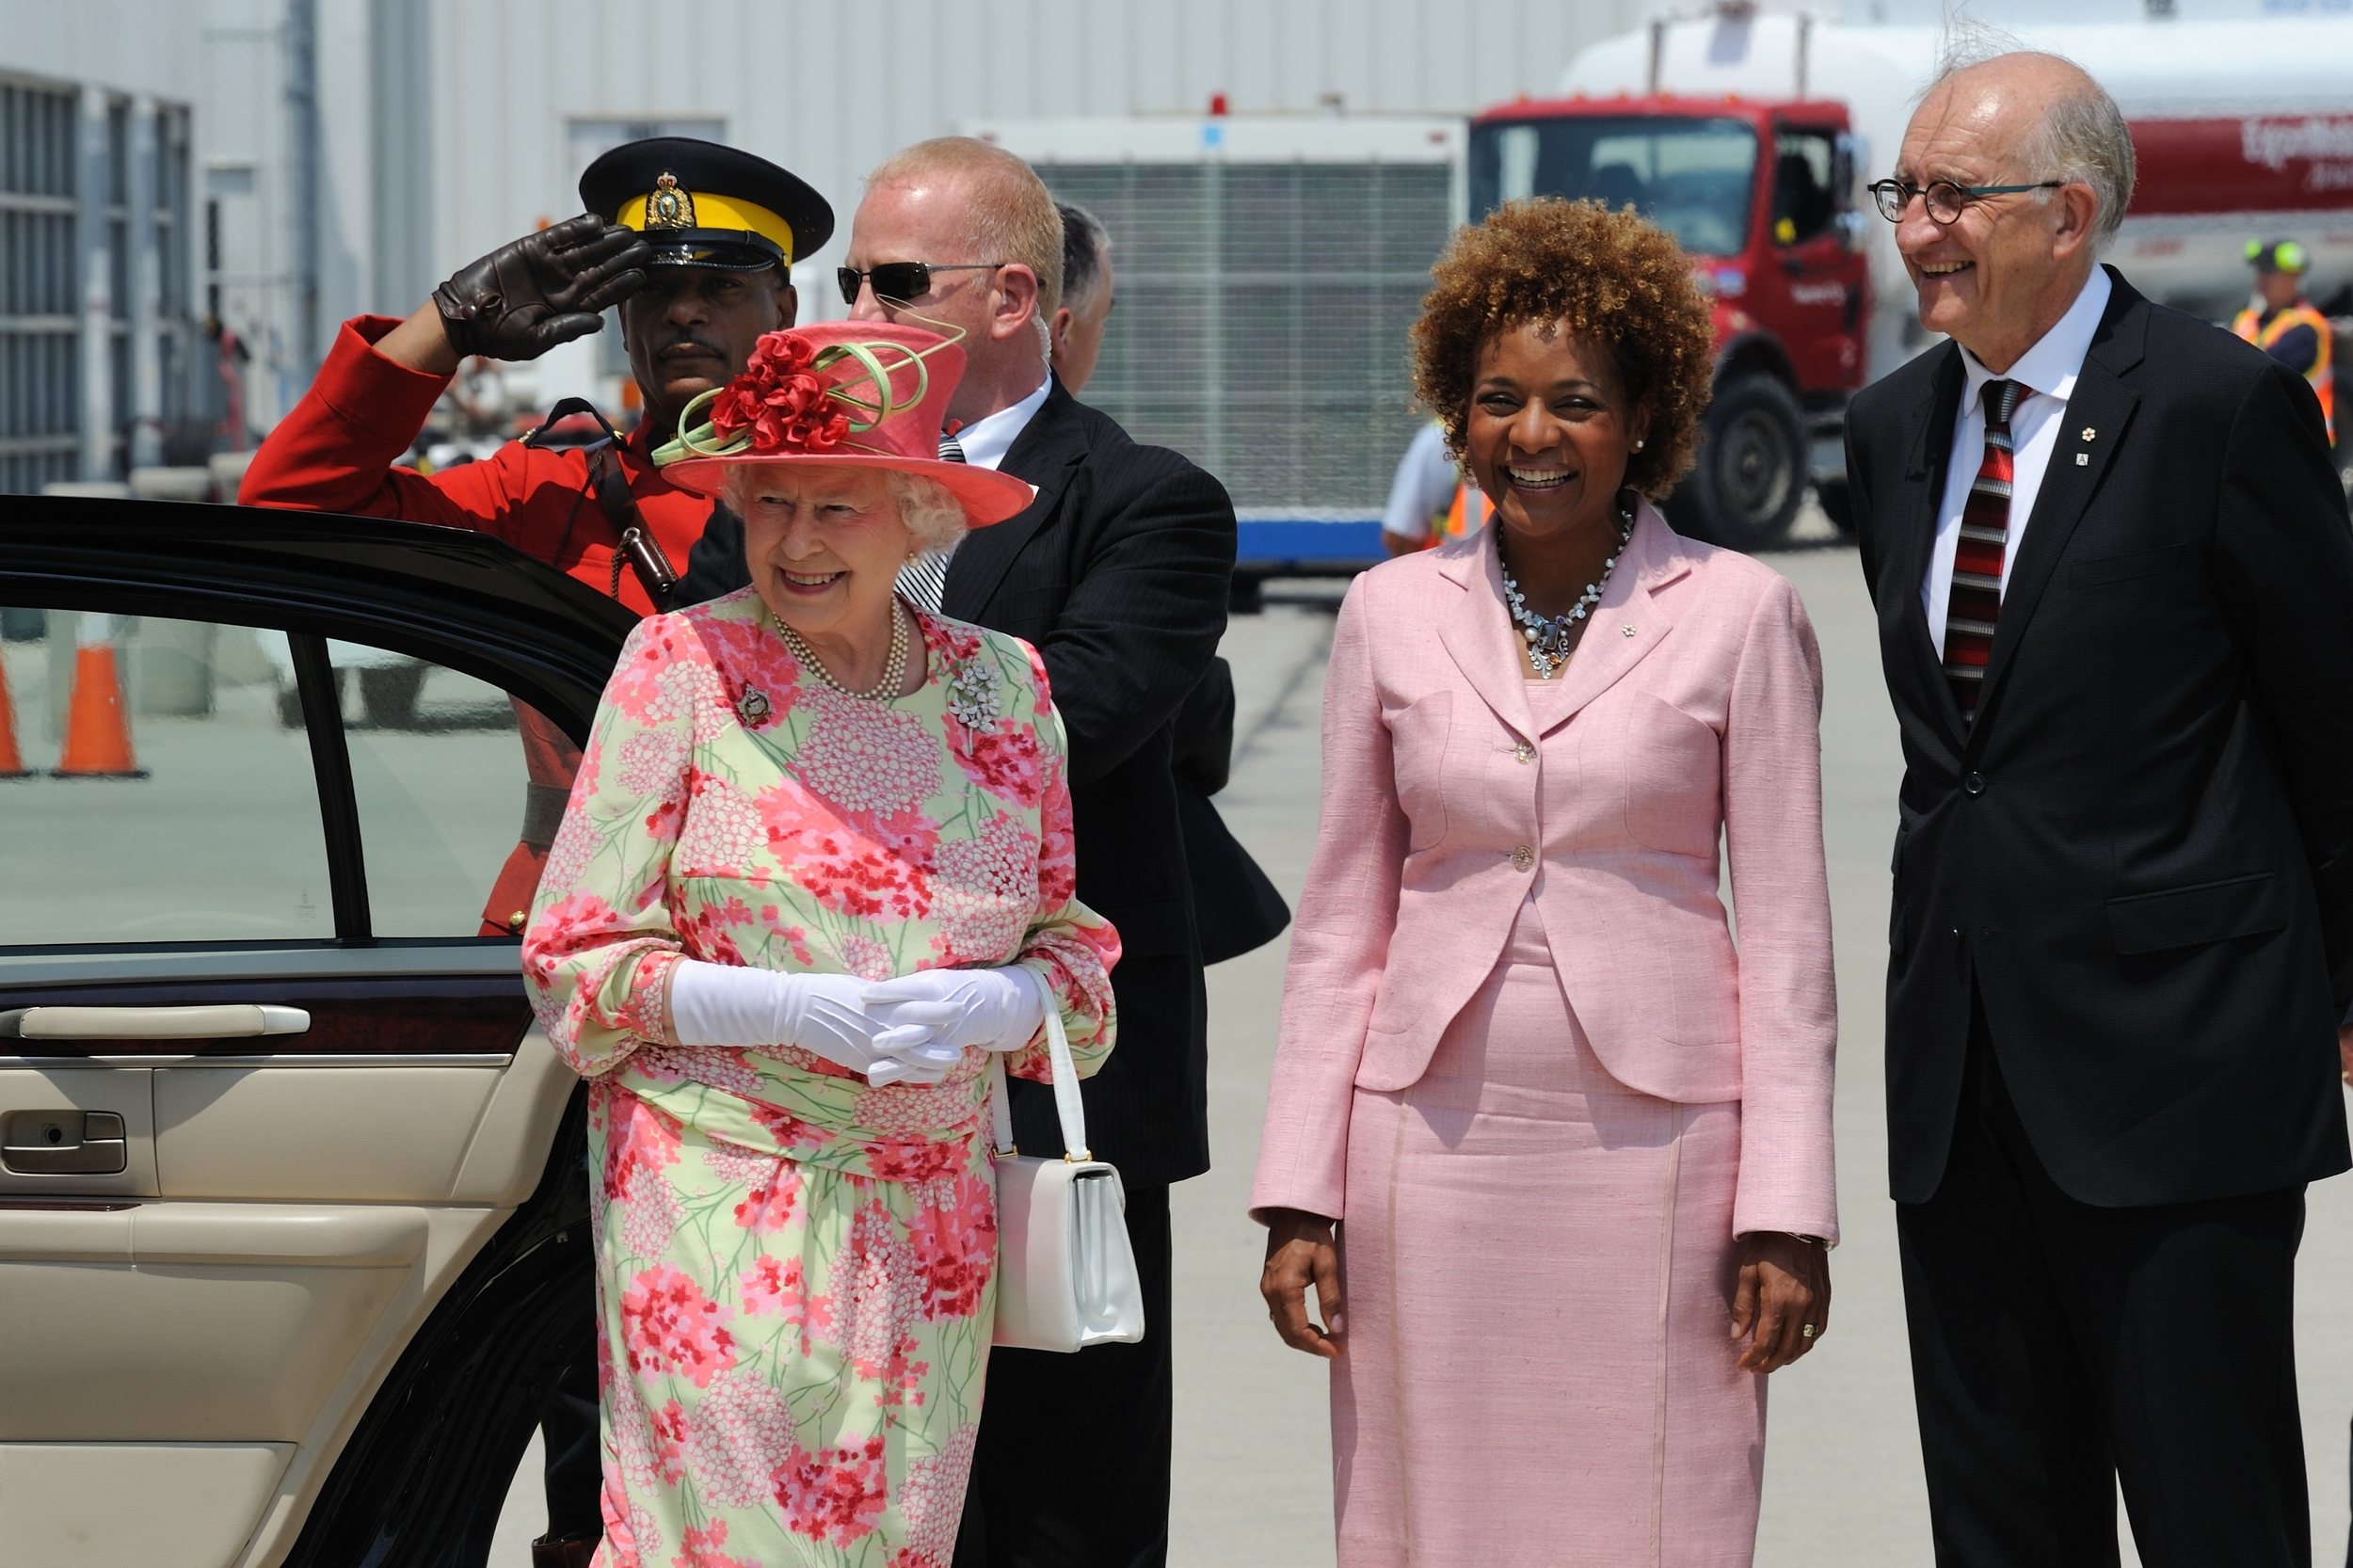 Toronto, Her Majesty The Queen, Juillet 2010;.JPG